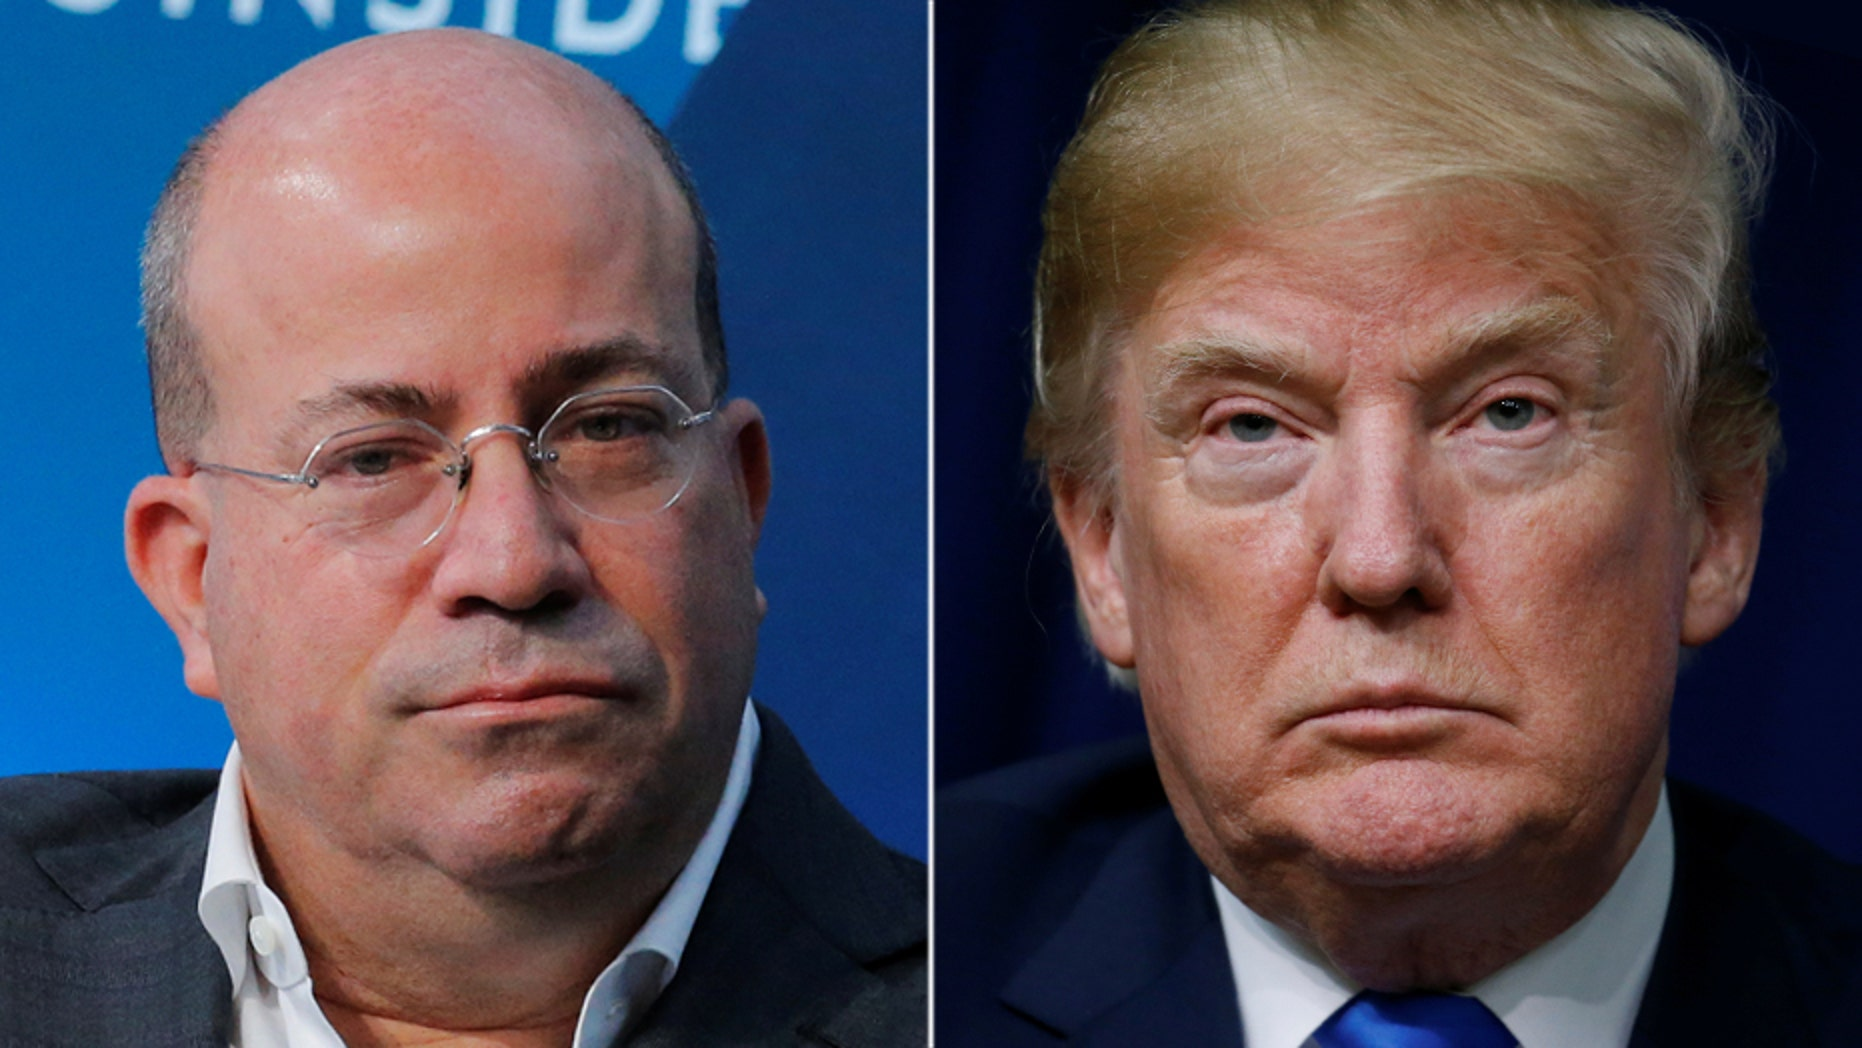 CNN President Jeff Zucker issued a statement condemning White House officials after an explosive device was sent to the network's New York City headquarters.